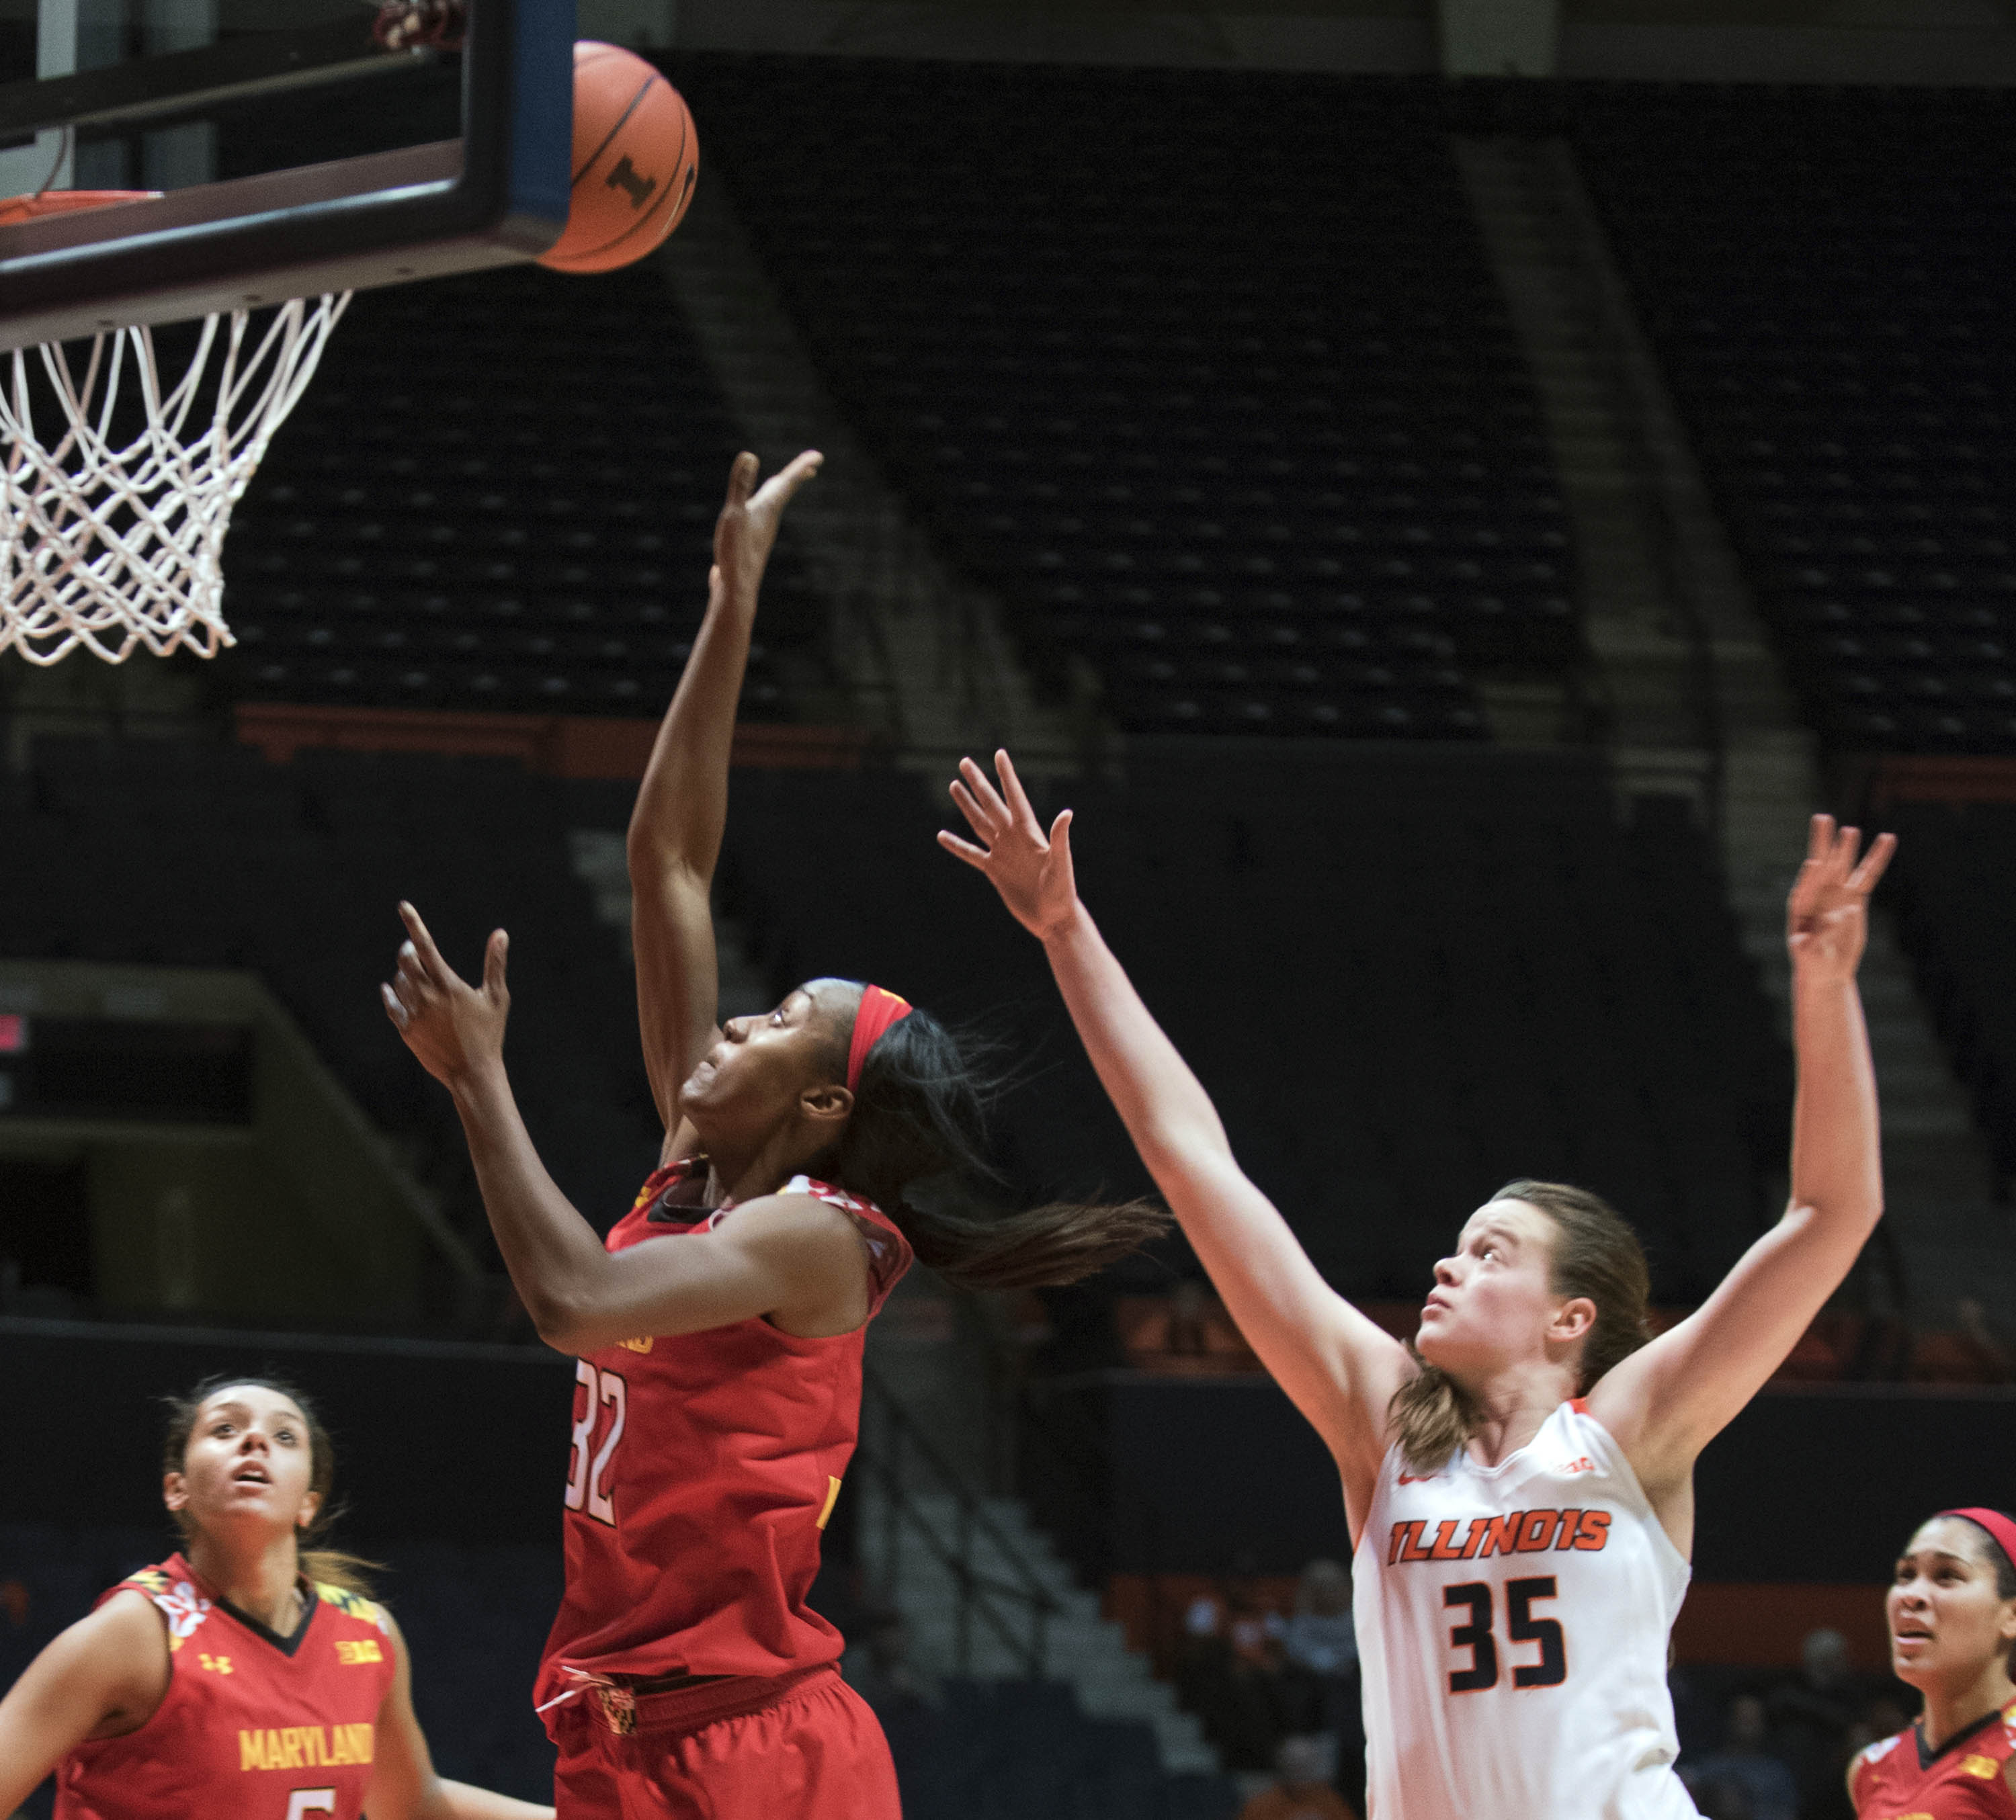 Maryland's guard Shatori Walker-Kimbrough (32) shoots as Illinois' forward Alex Wittinger (35) watches during the second half of an NCAA college basketball game in Champaign, Ill. on Thursday, Dec. 31, 2015. Maryland defeated Illinois 79-63. (AP Photo/Rob